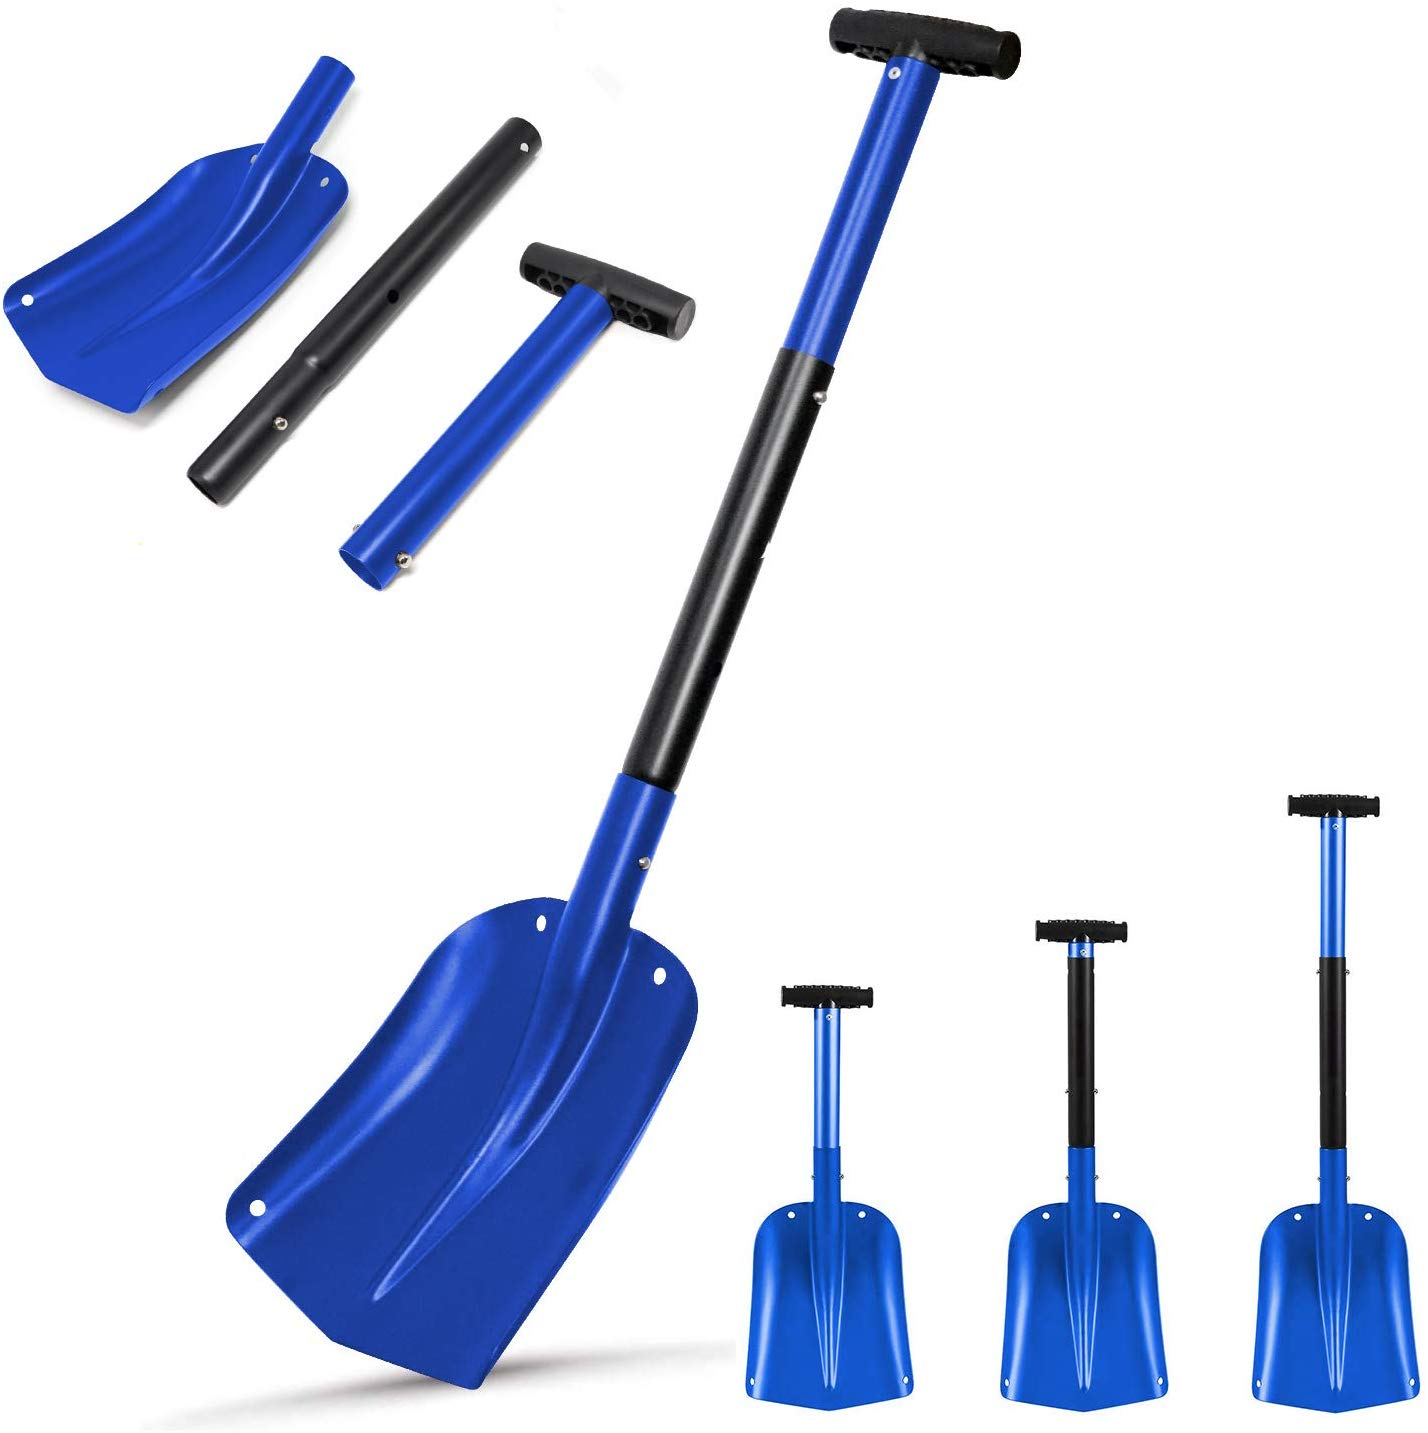 Black Leaflai Snow Shovel for Car Large Capacity Snow Shovel Durable Aluminum Edge Blade for Car Truck Driveway Camping Outdoor Emergency 3 Piece Detachable Portable Emergency Snow Shovel